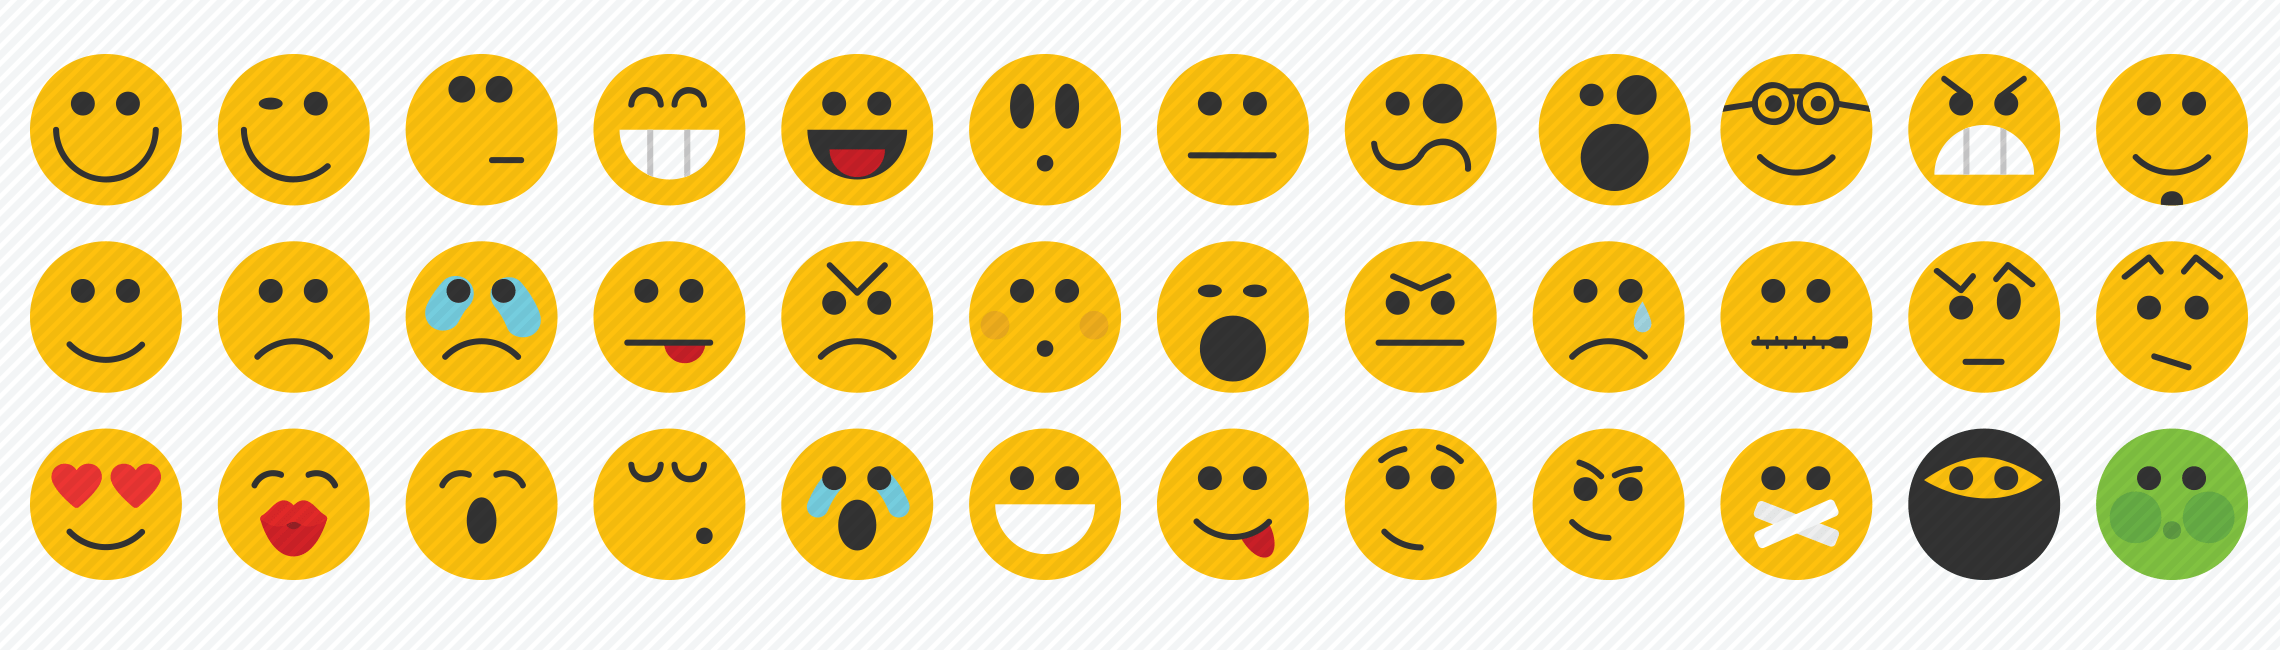 smilies flat icons set